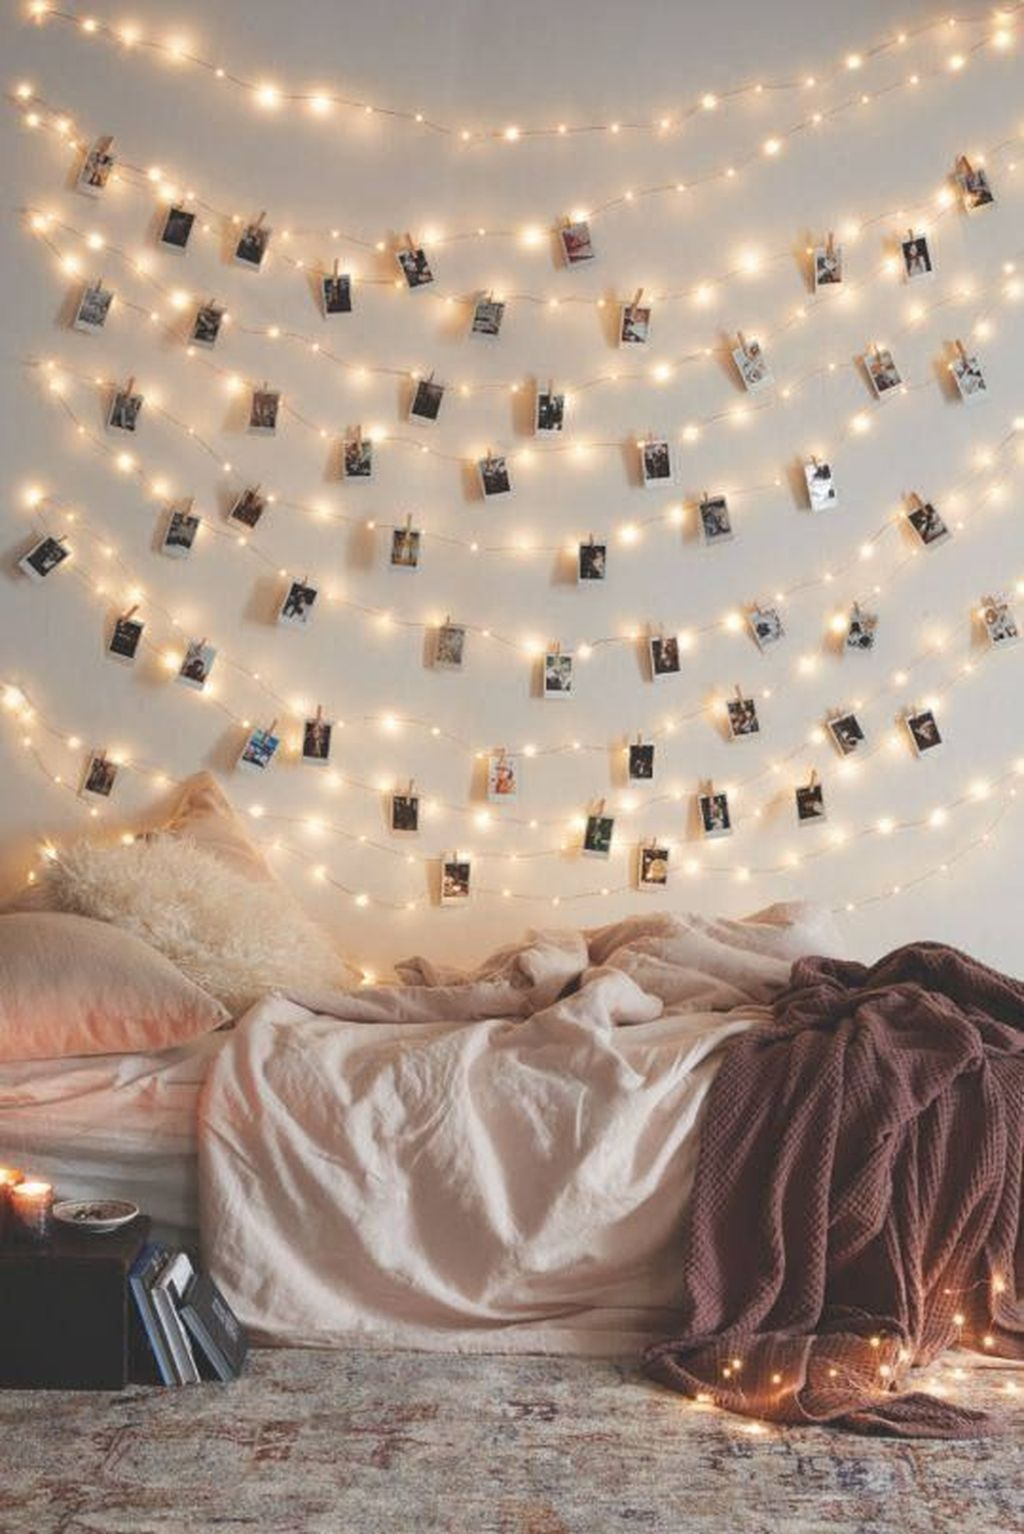 Stunning Christmas Lights Decoration Ideas In The Bedroom 12